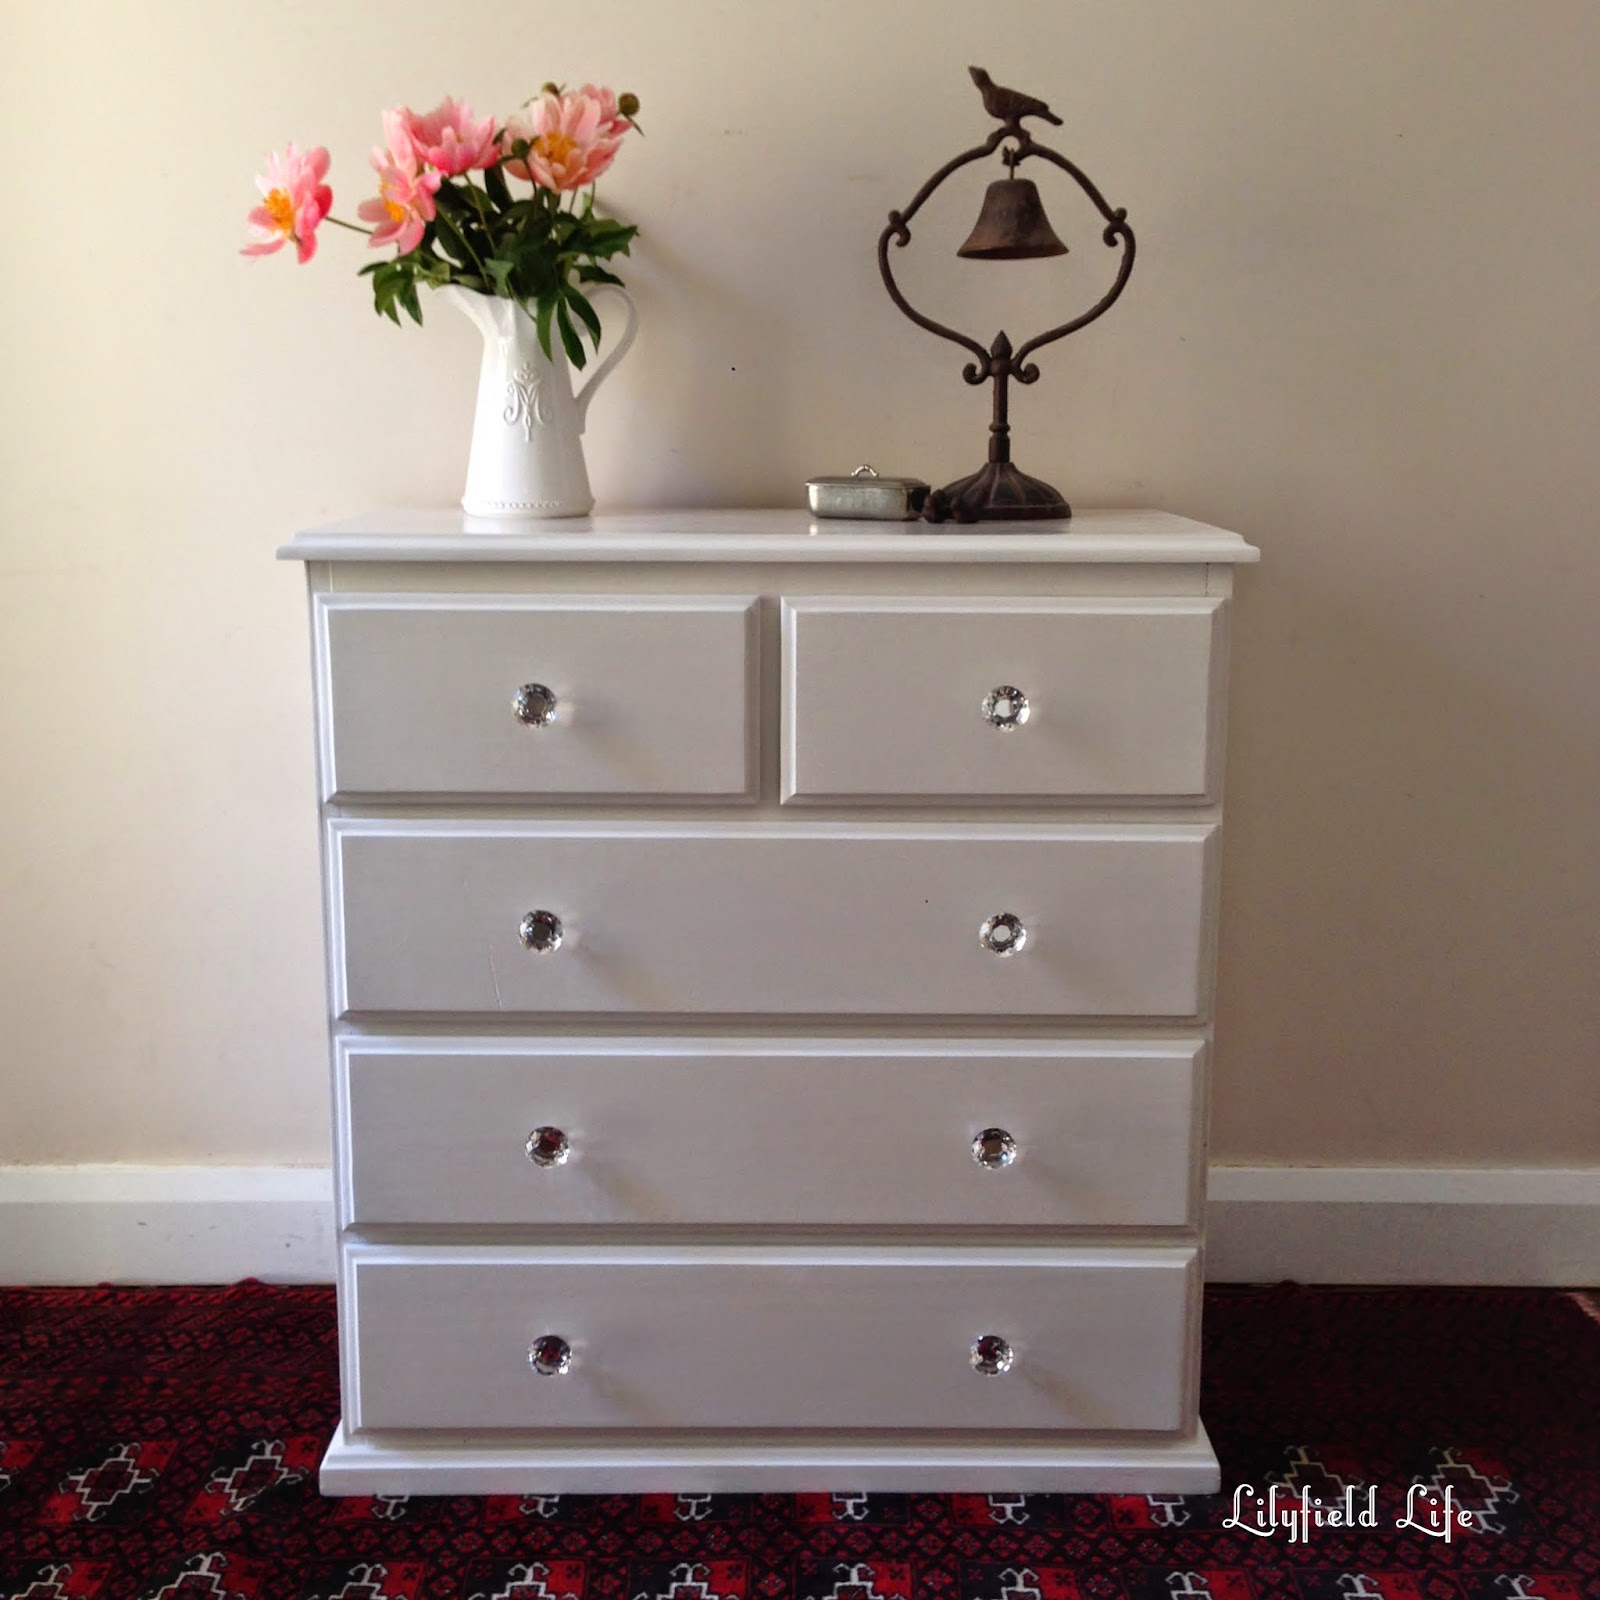 White Painted Furniture lilyfield life: recent custom painted furniture